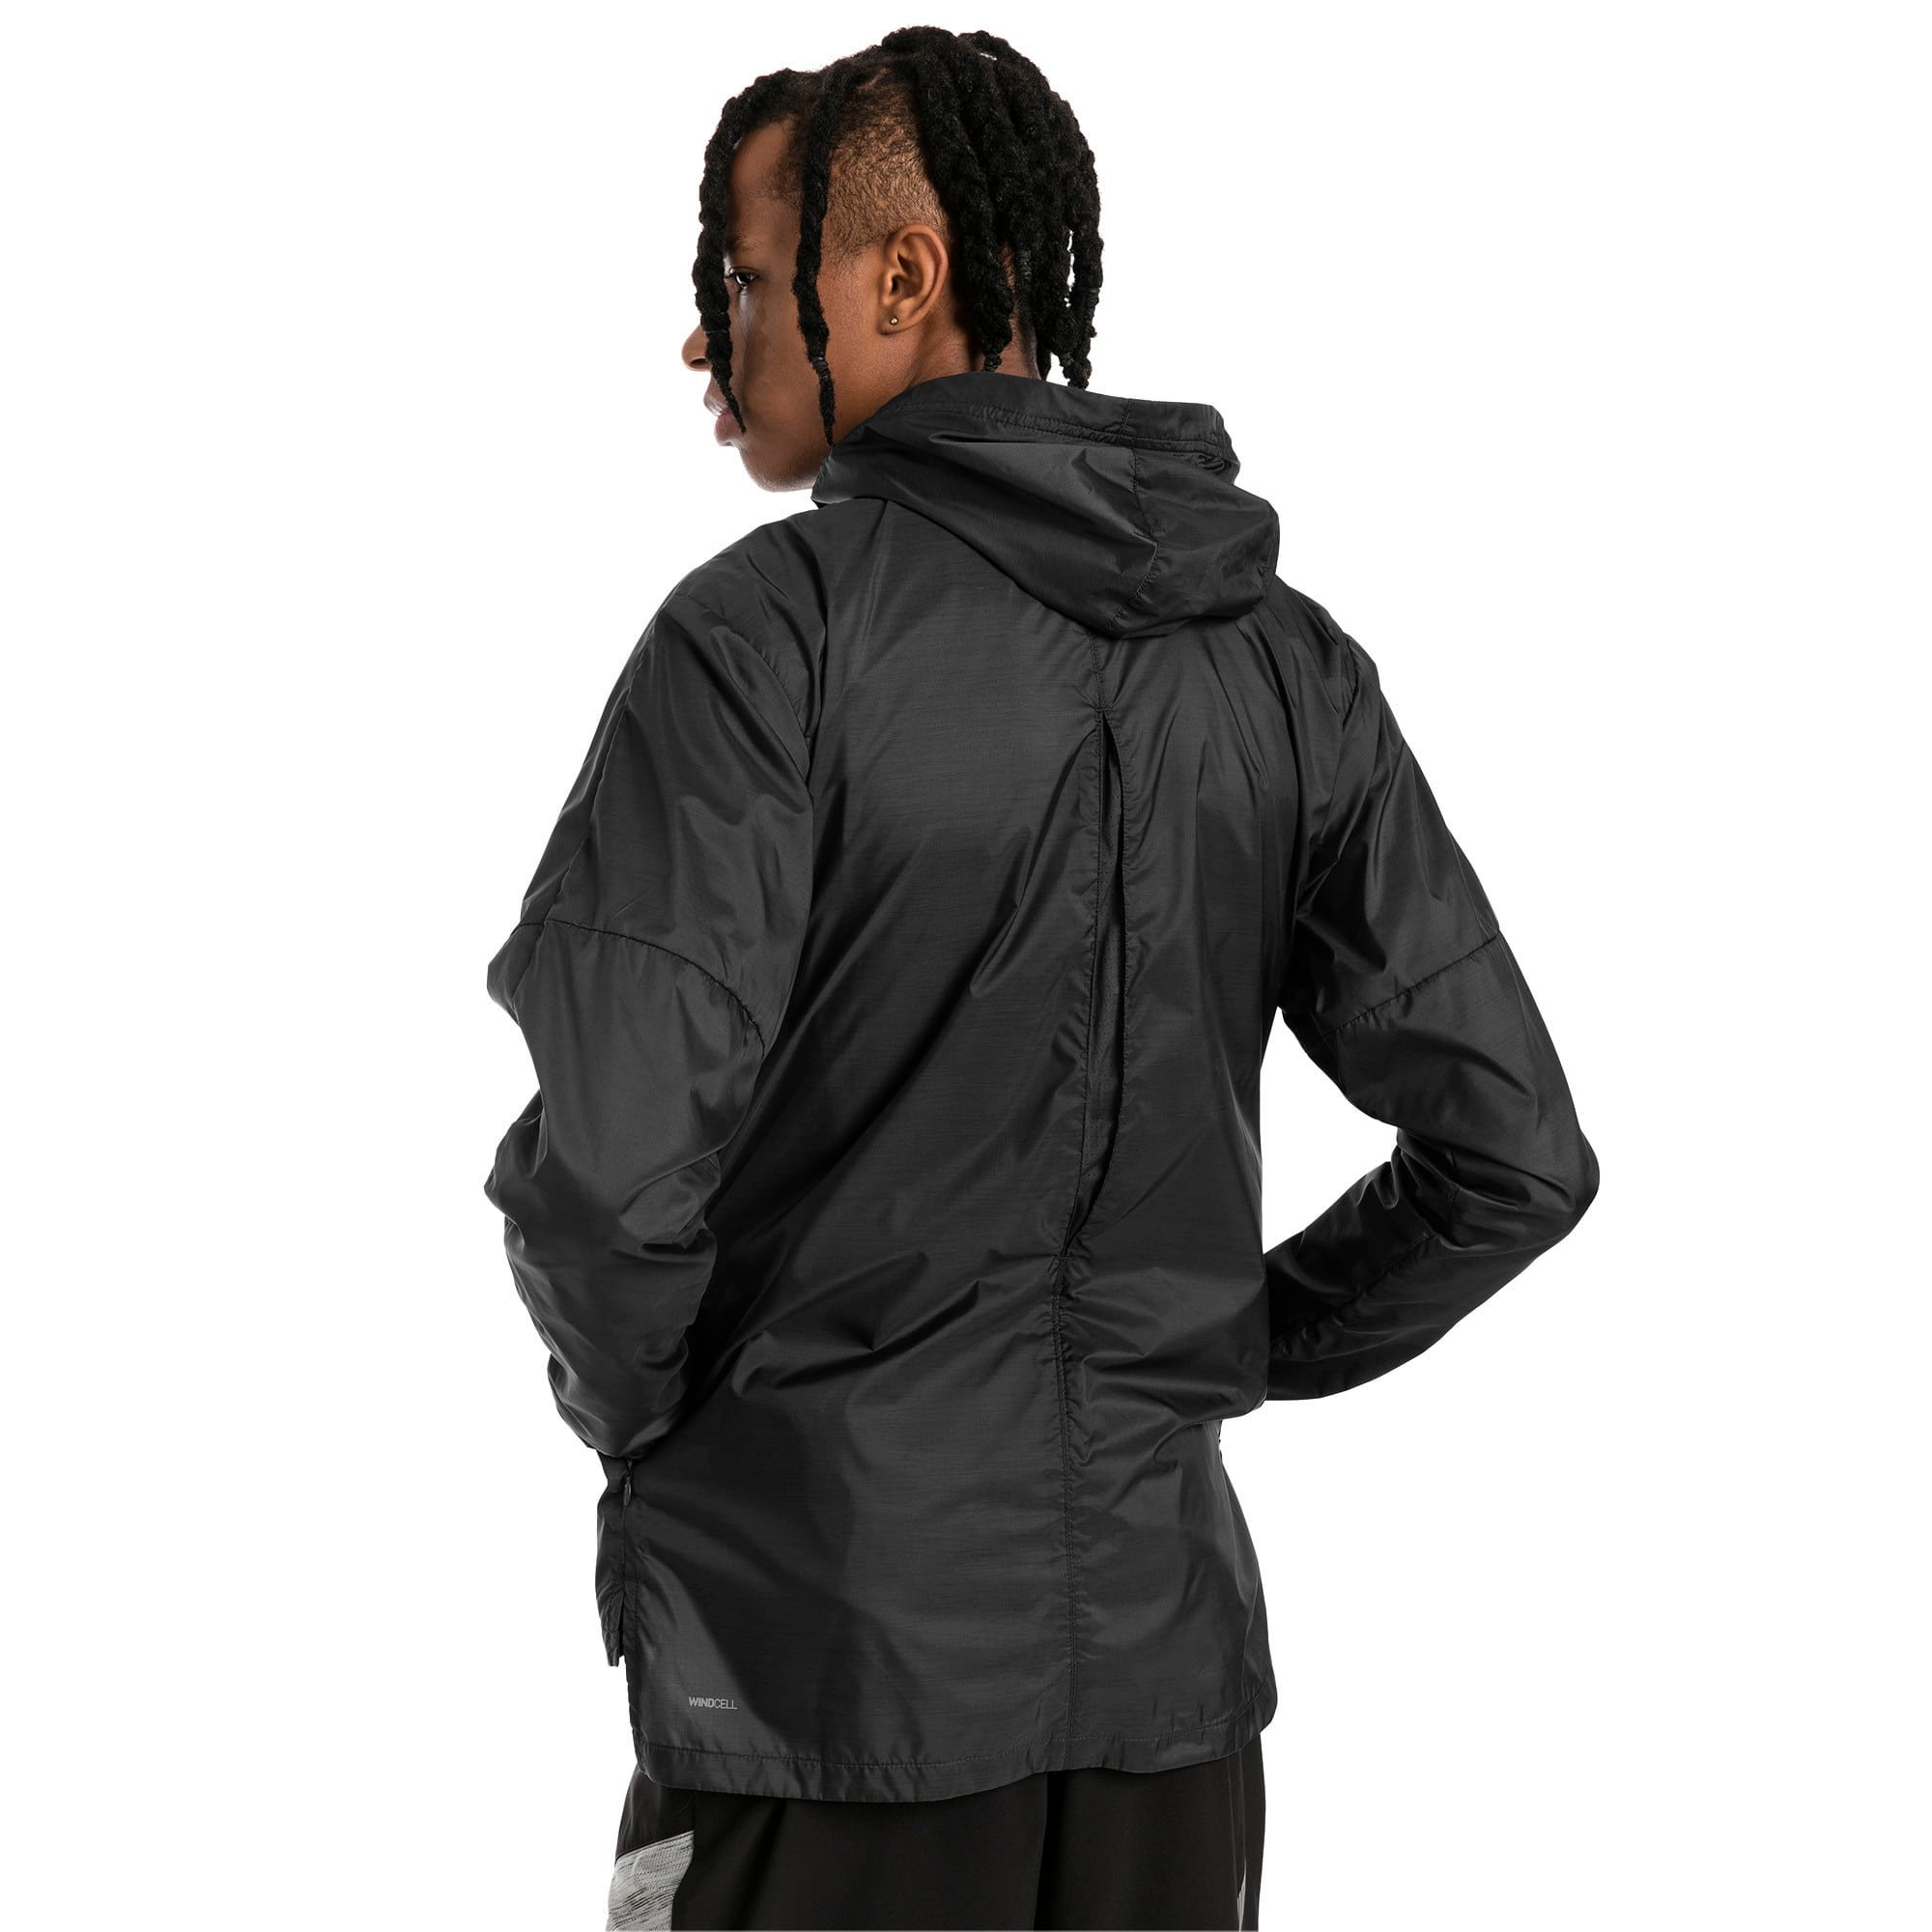 Thumbnail 2 of LastLap Herren Training Jacke, Asphalt Heather, medium